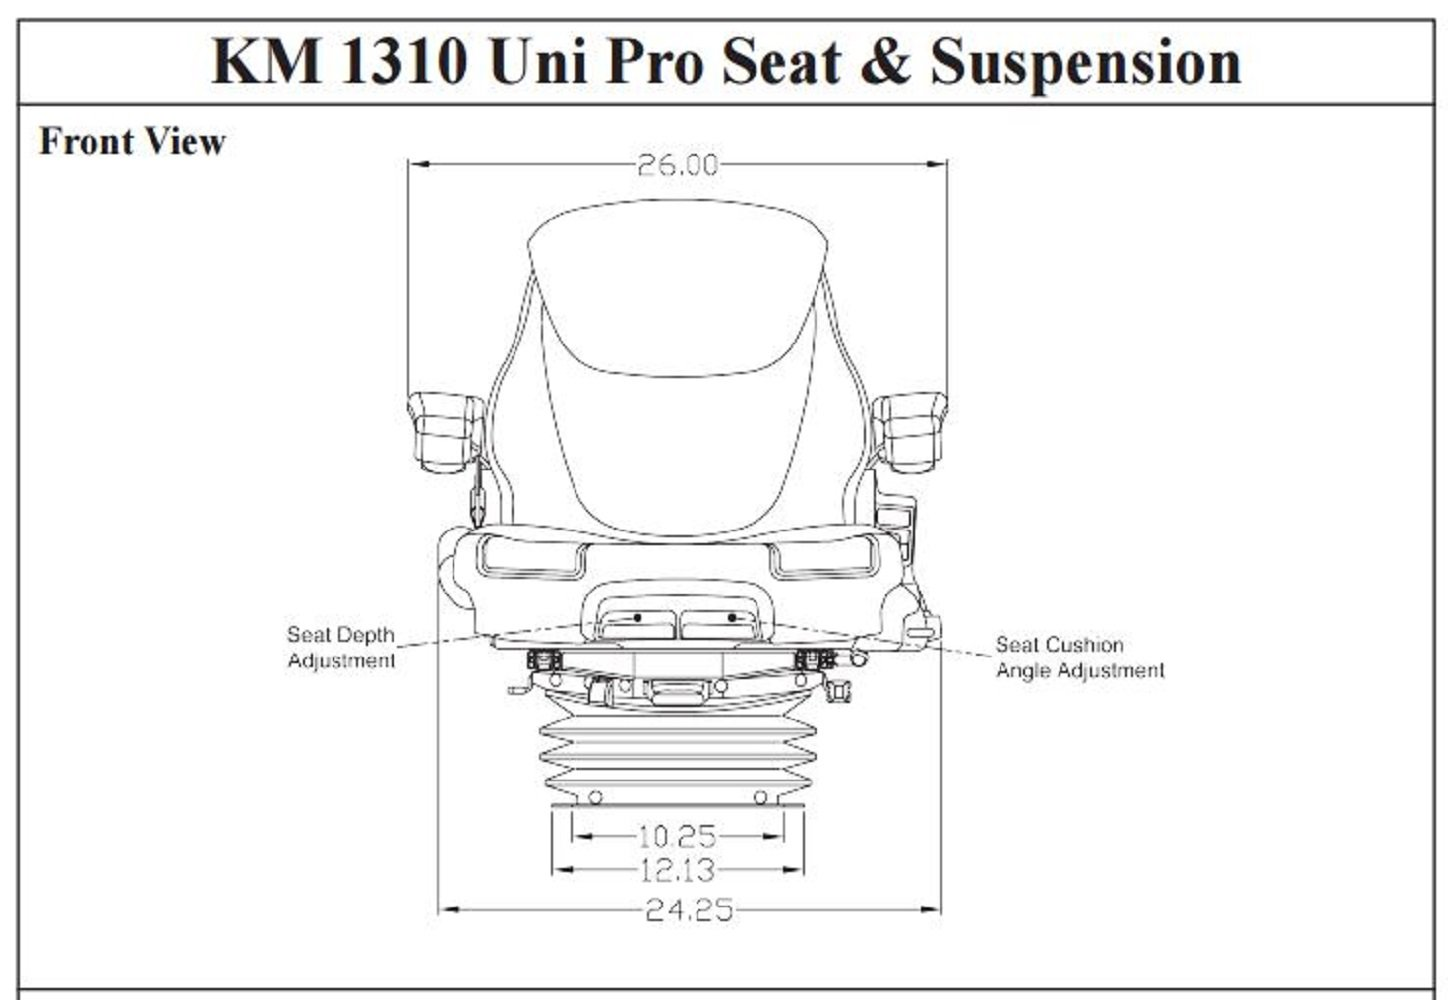 Amazon.com: KM 1310 Uni Pro Seat and Suspension Seat Tractors Case IH,  McCormick, Steiger, John Deere: Industrial & Scientific